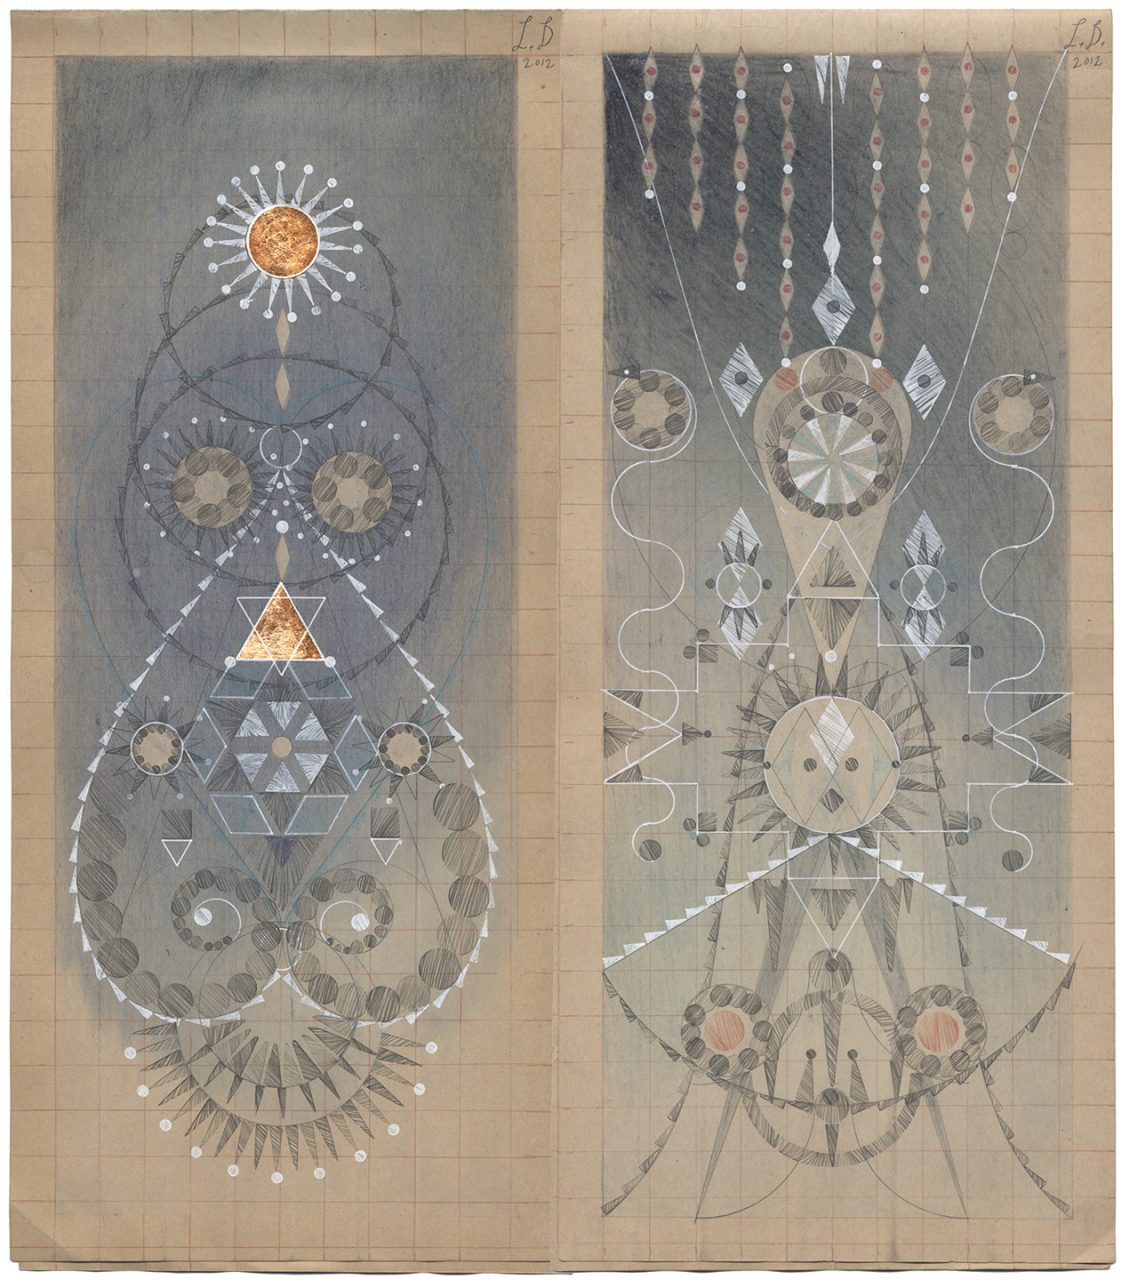 Tide Fulcrum & The Motion of Fixed Stars   Constellation Symptom No. 5, 2012